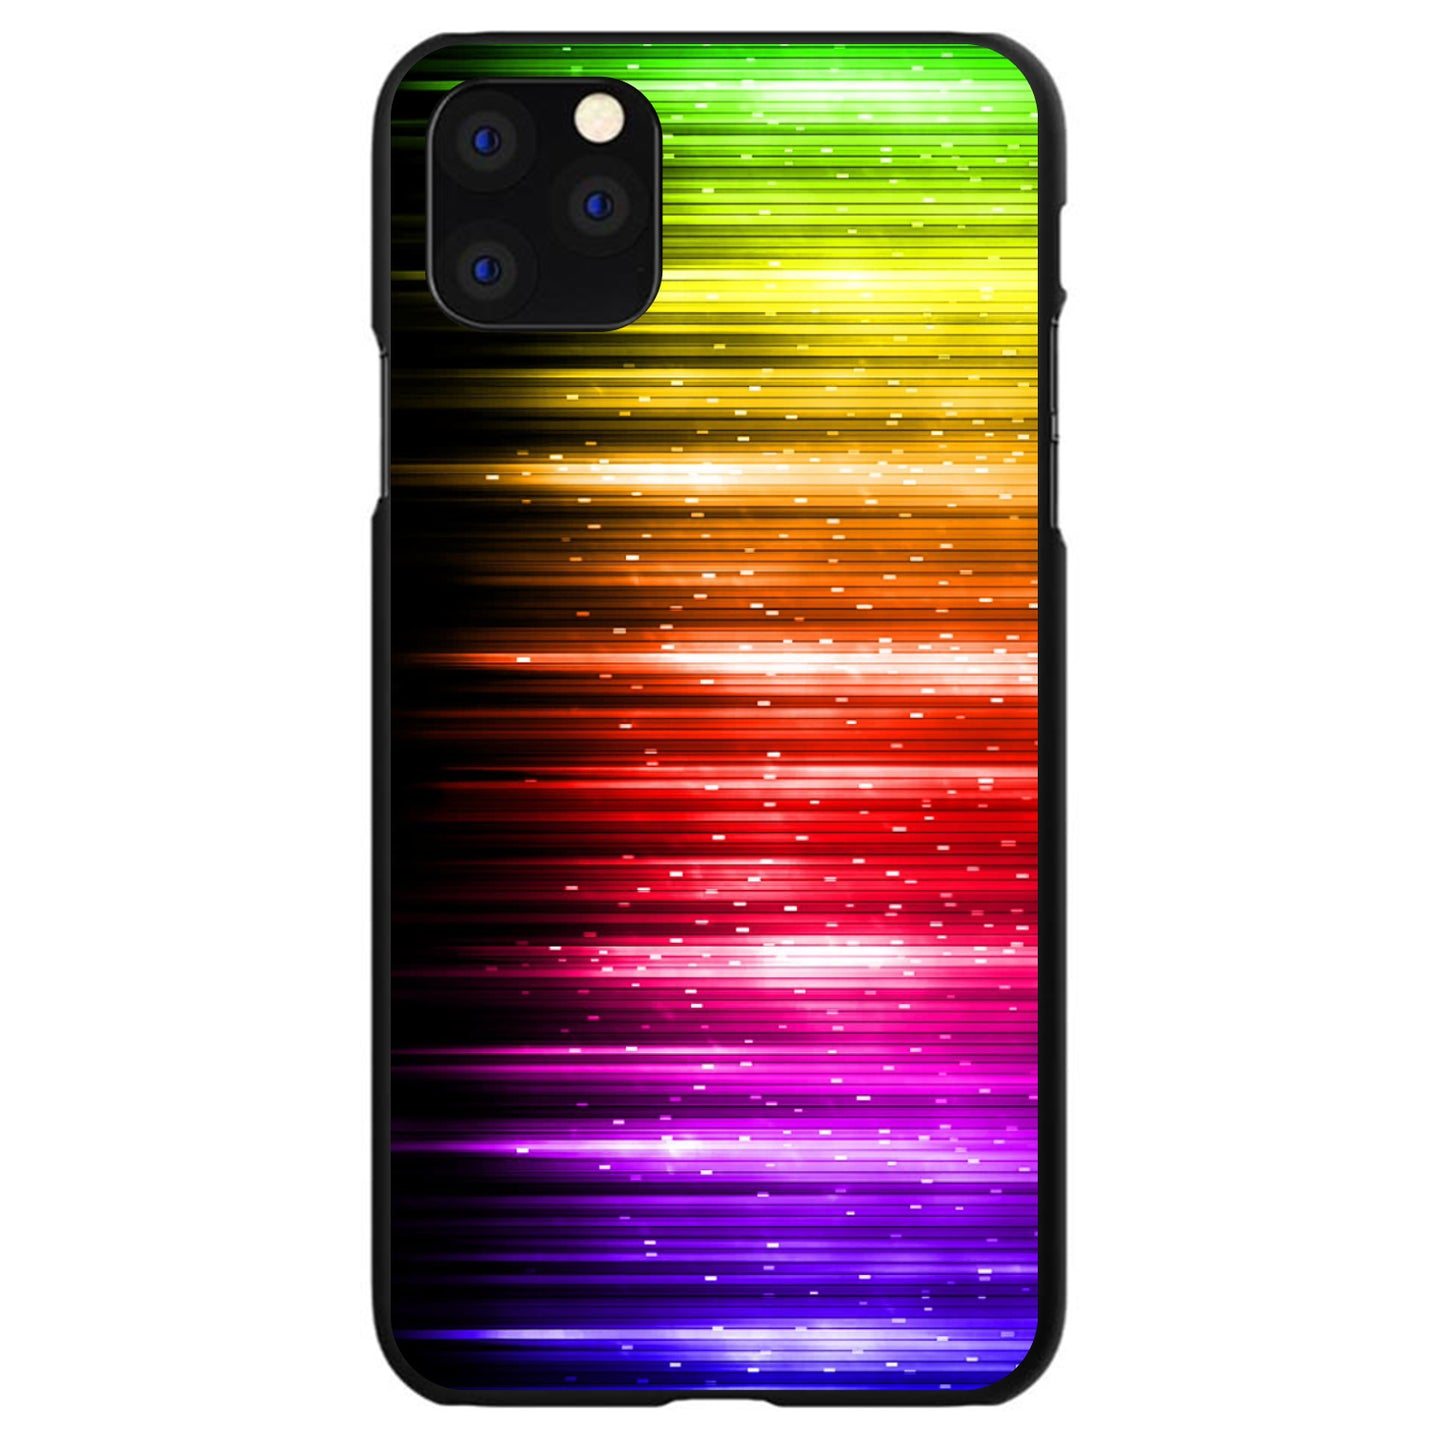 DistinctInk® Hard Plastic Snap-On Case for Apple iPhone - Rainbow Light Glowing Lines